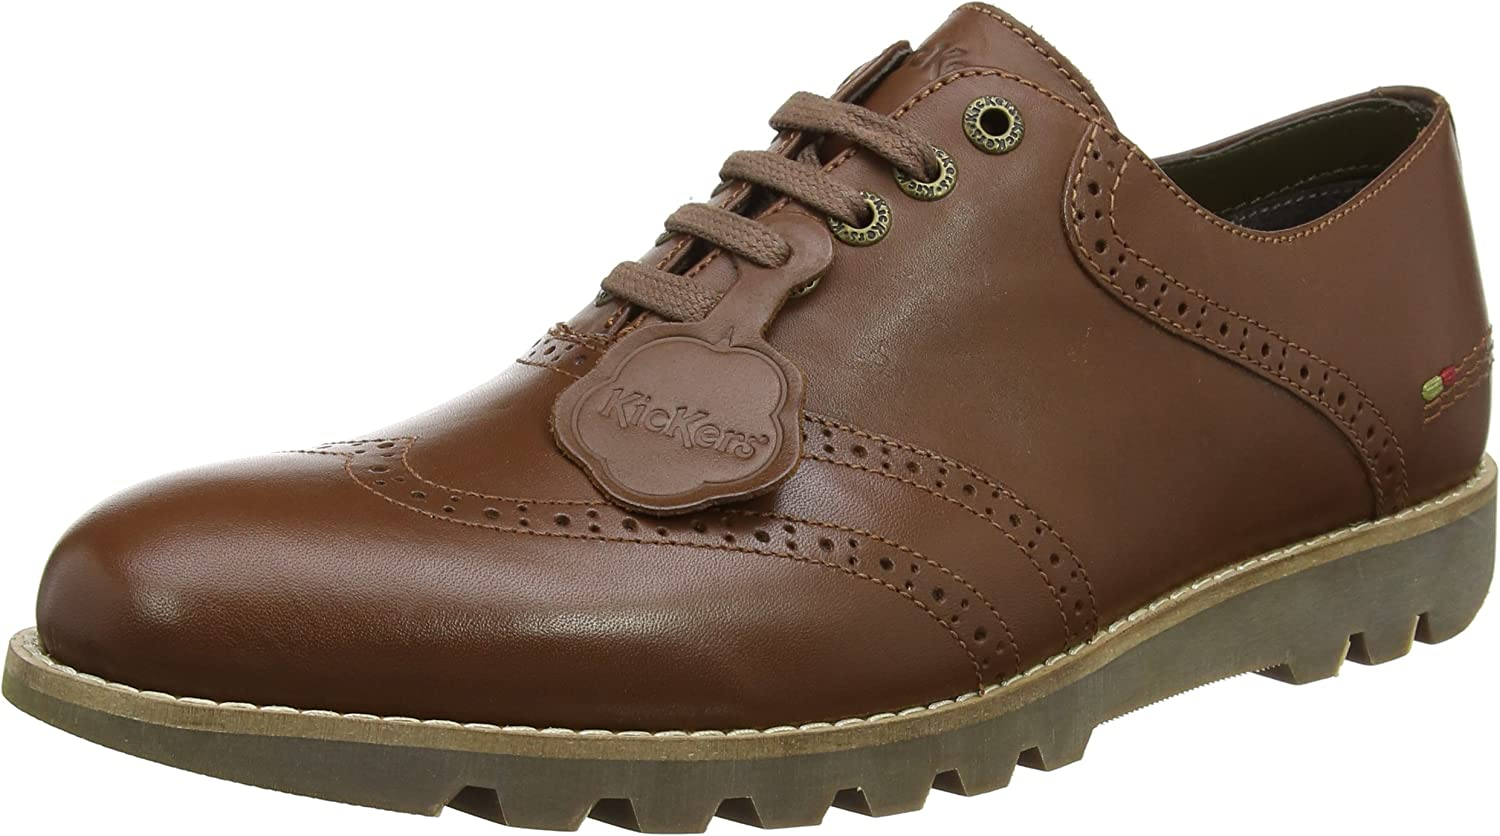 Kickers Men's Kymbo Classic Brogue Lthr Am Mid